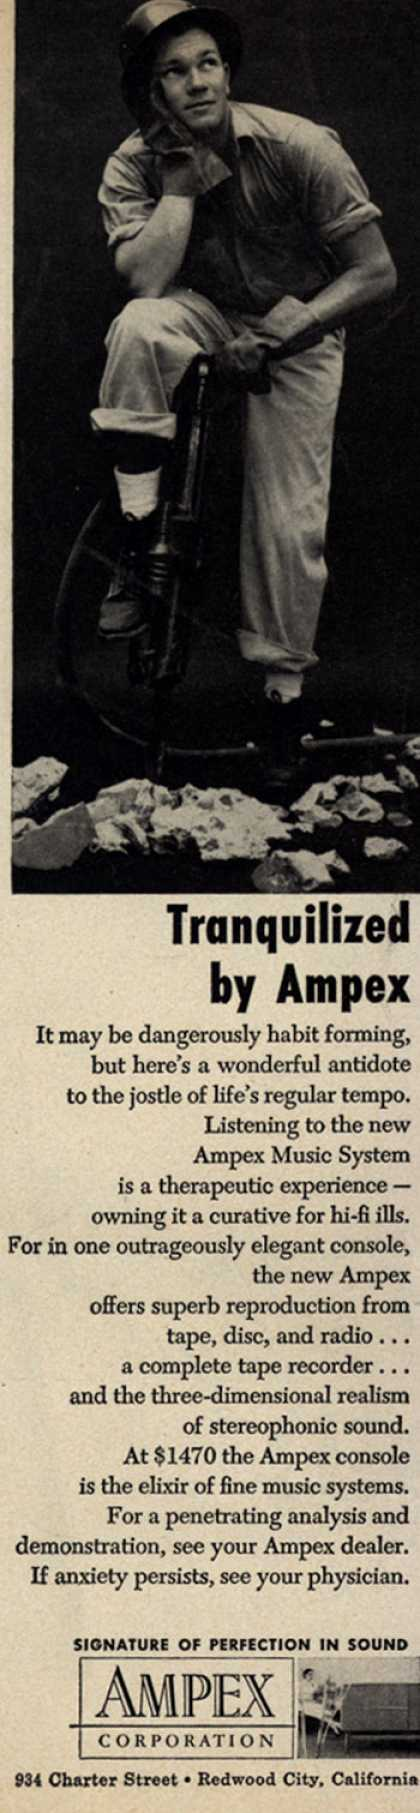 Ampex Corporation's Ampex Music System – Tranquilized by Ampex (1956)